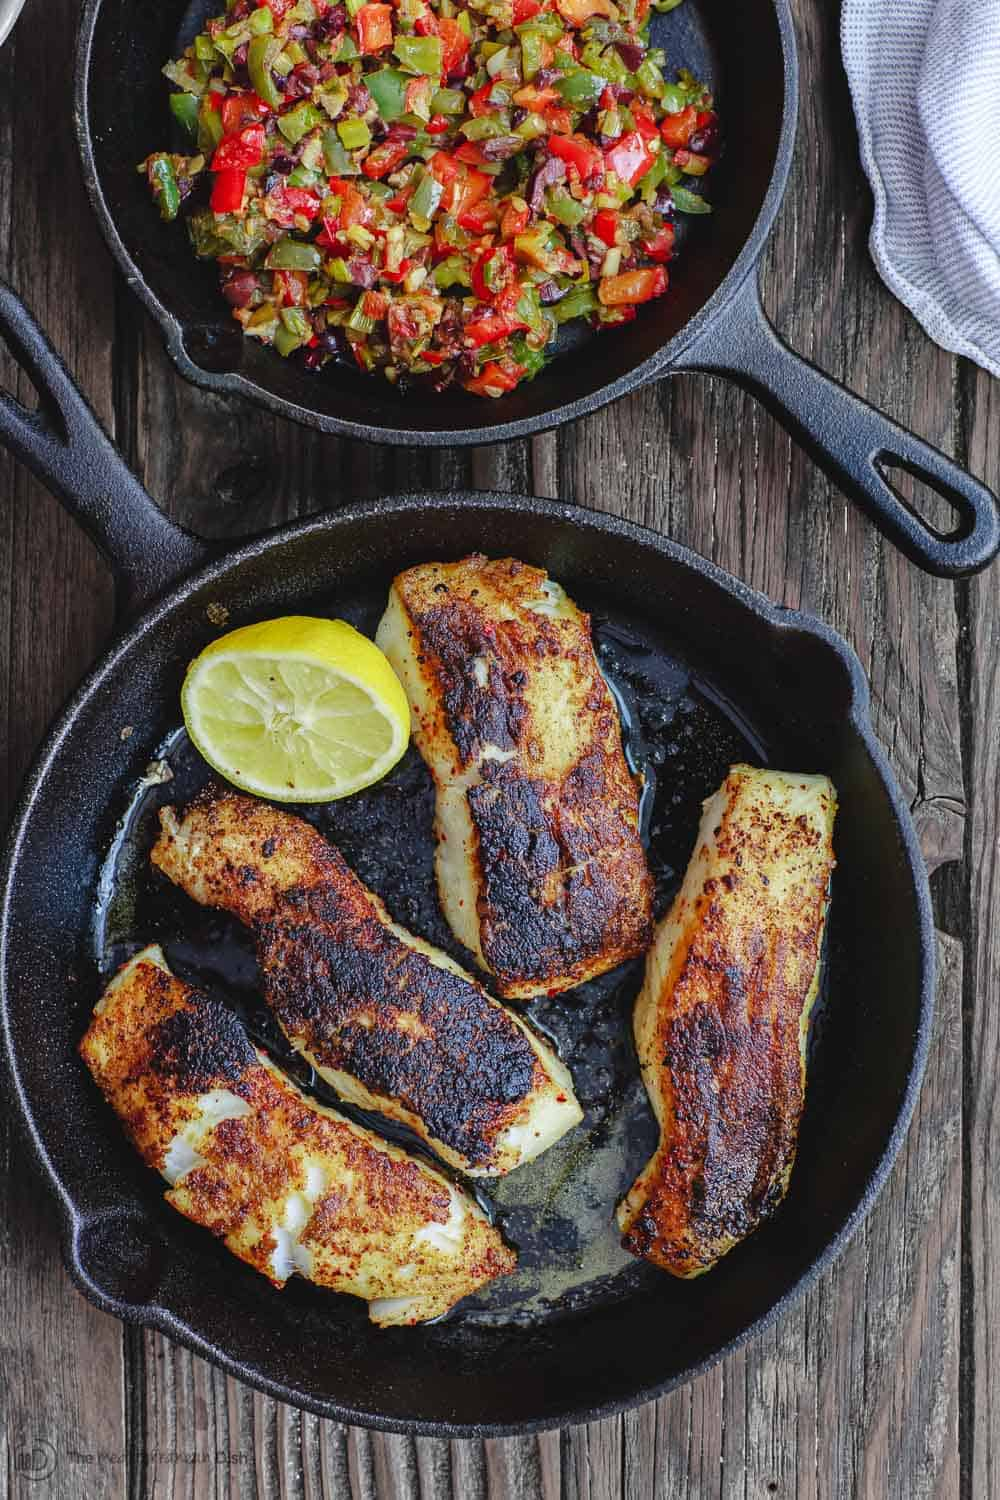 Pan seared sea bass in a skillet